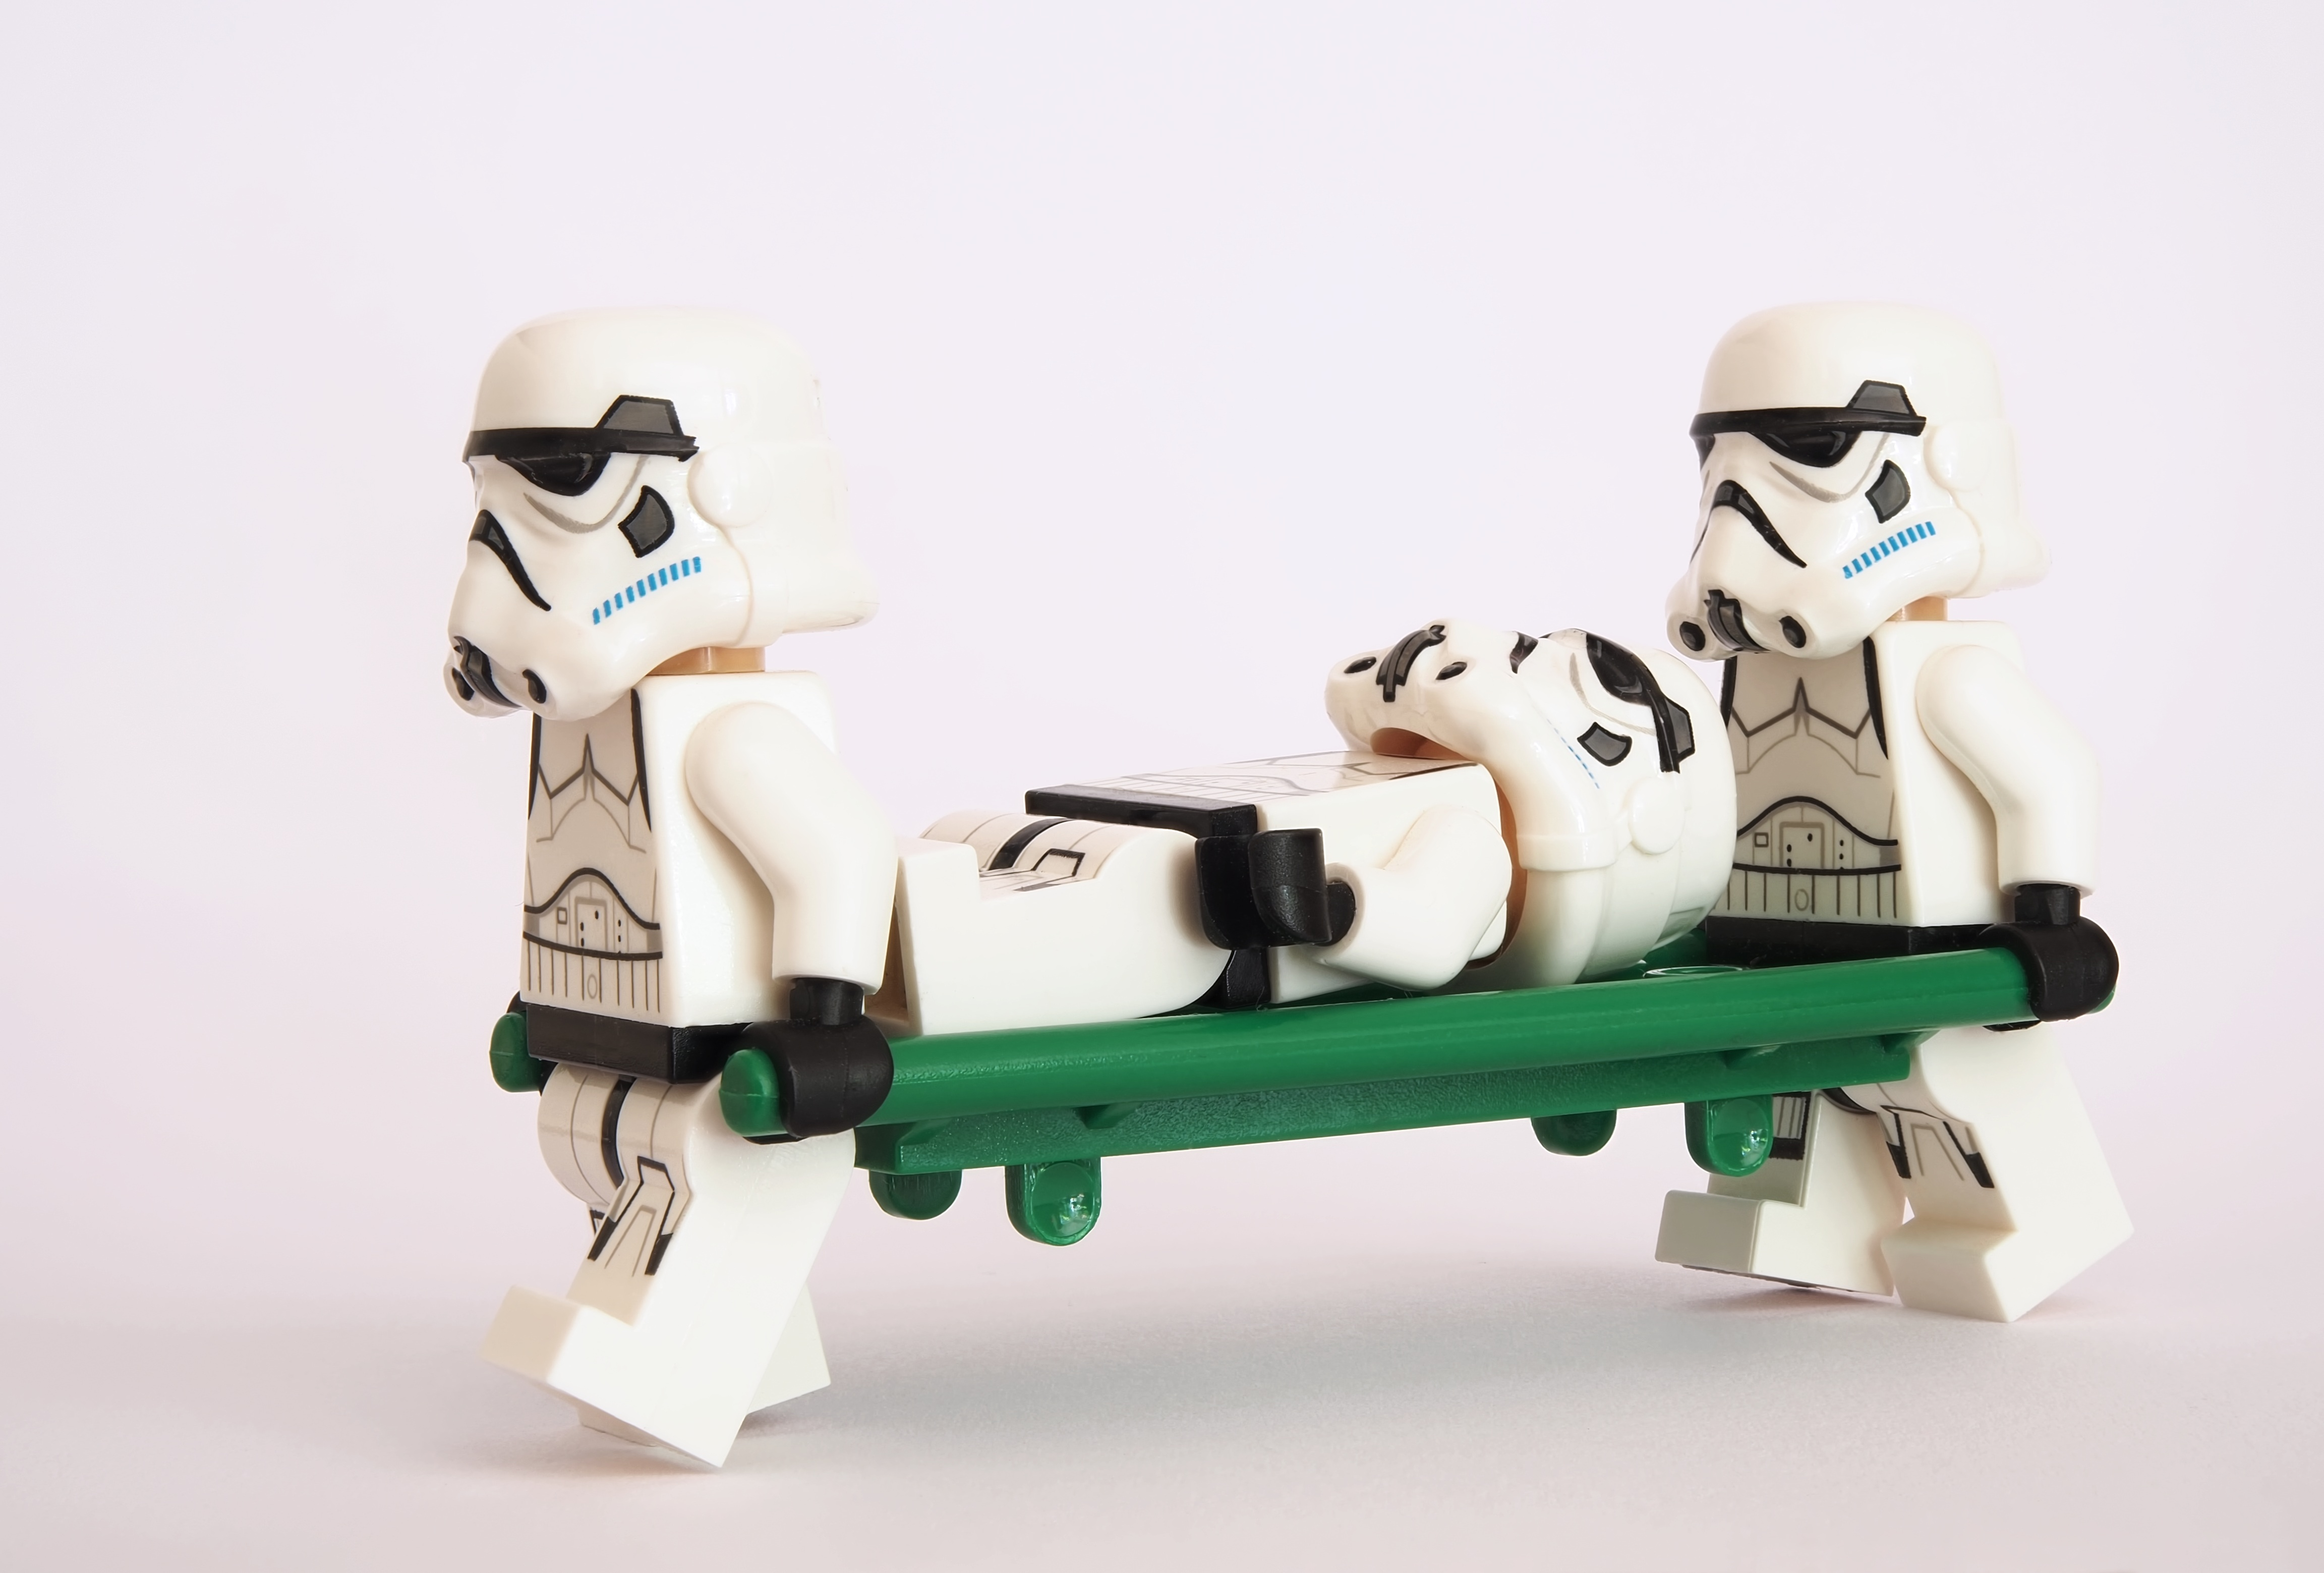 Two Lego Stormtrooper mini figures carrying a third Stormtooper on a green stretcher